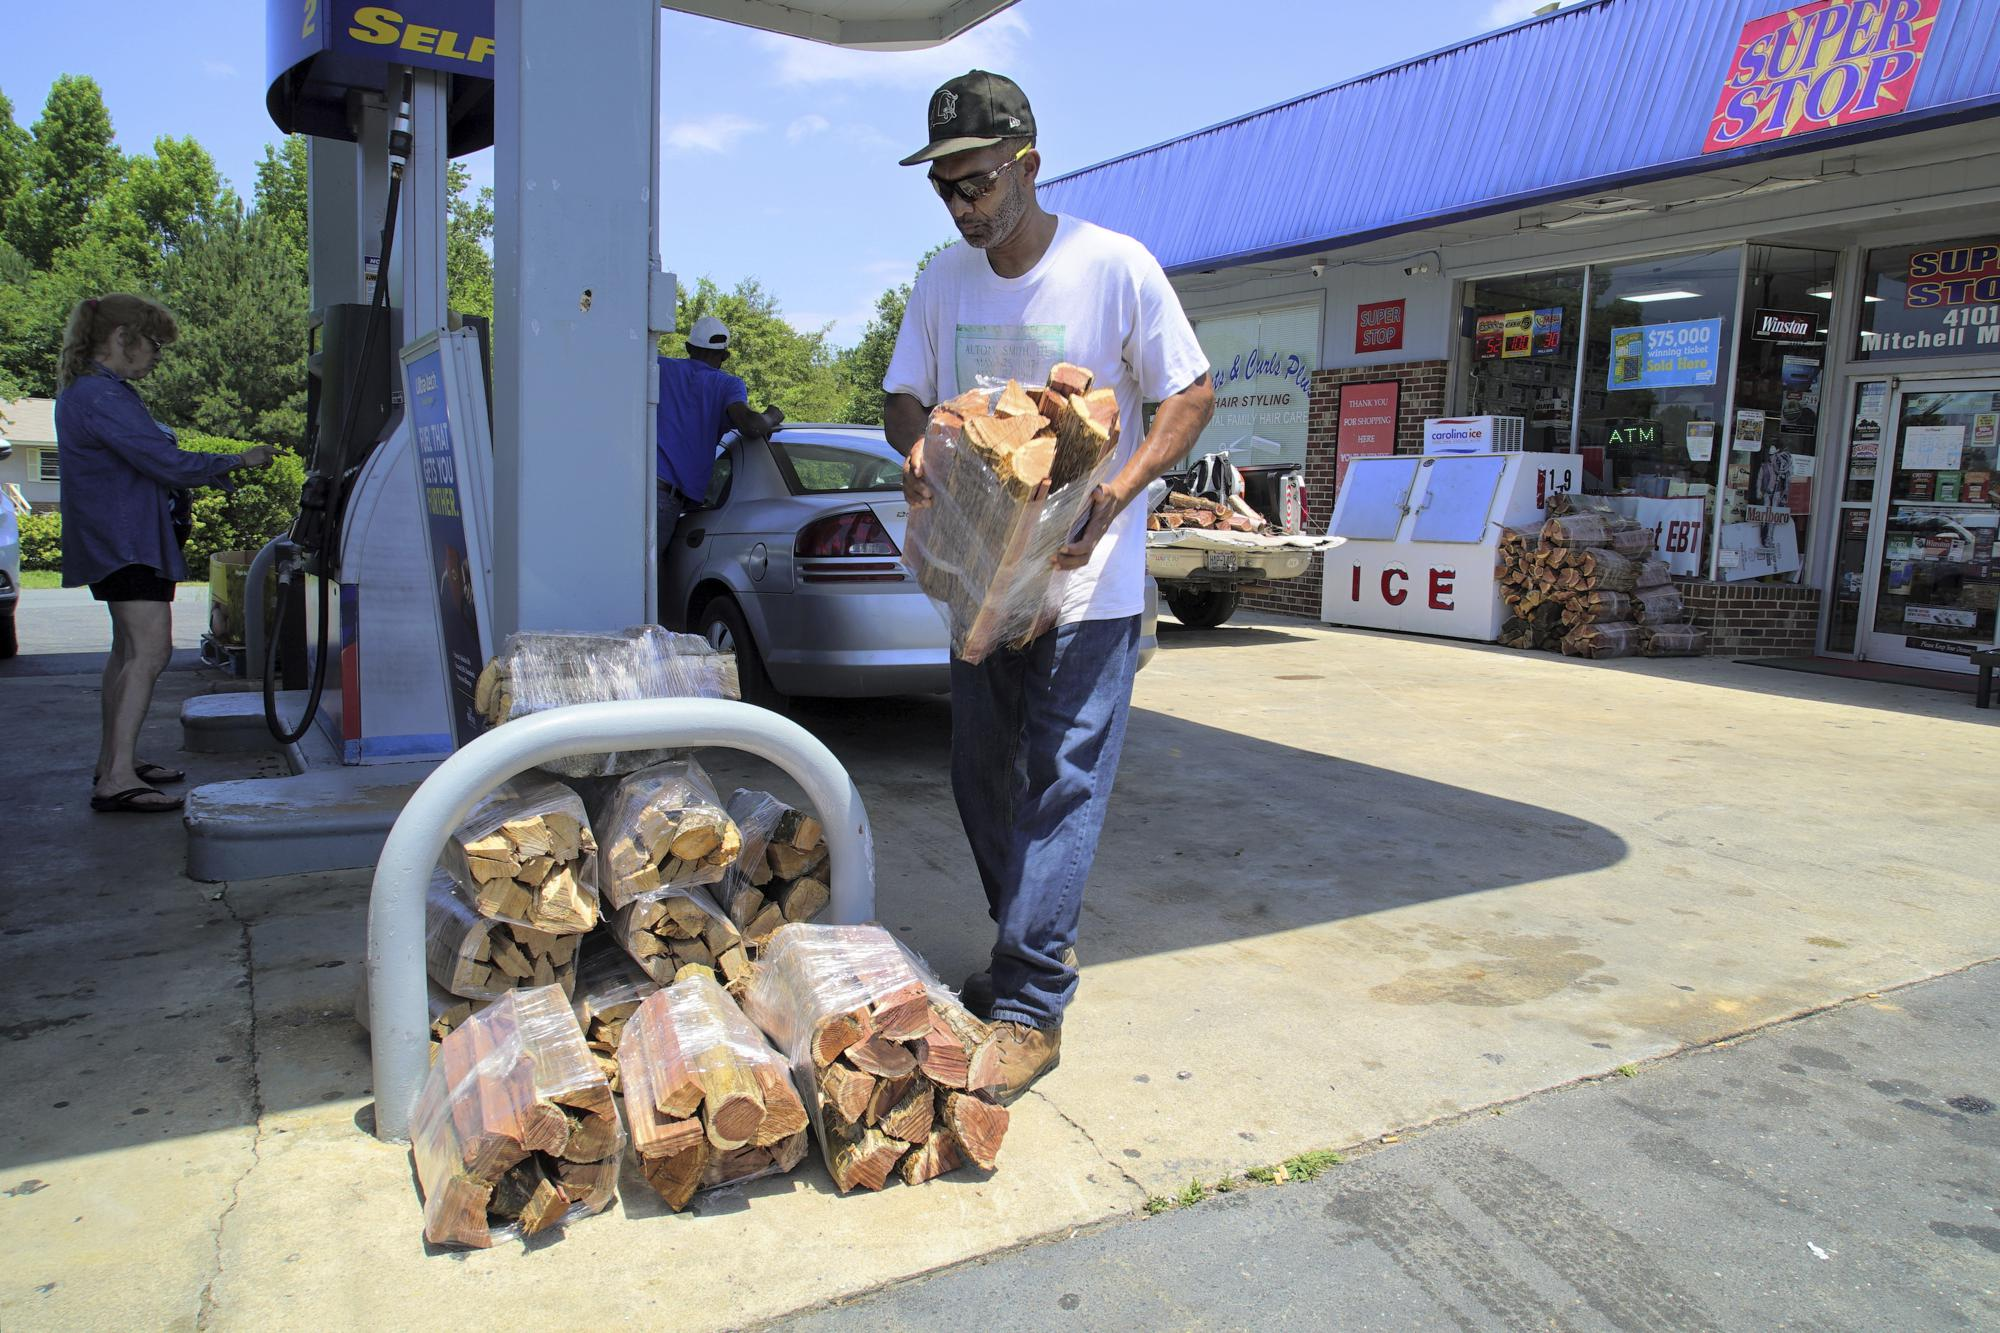 Alton Lucas delivers wrapped firewood to a convenience store near his home outside of Raleigh, N.C., on Friday, June 18, 2021. It's one of the many jobs he performs as part of his Sunflower Landscaping, a business he founded through the program Inmates to Entrepreneurs, a national nonprofit assisting people with criminal backgrounds by providing practical entrepreneurship education. (AP Photo/Allen G. Breed)